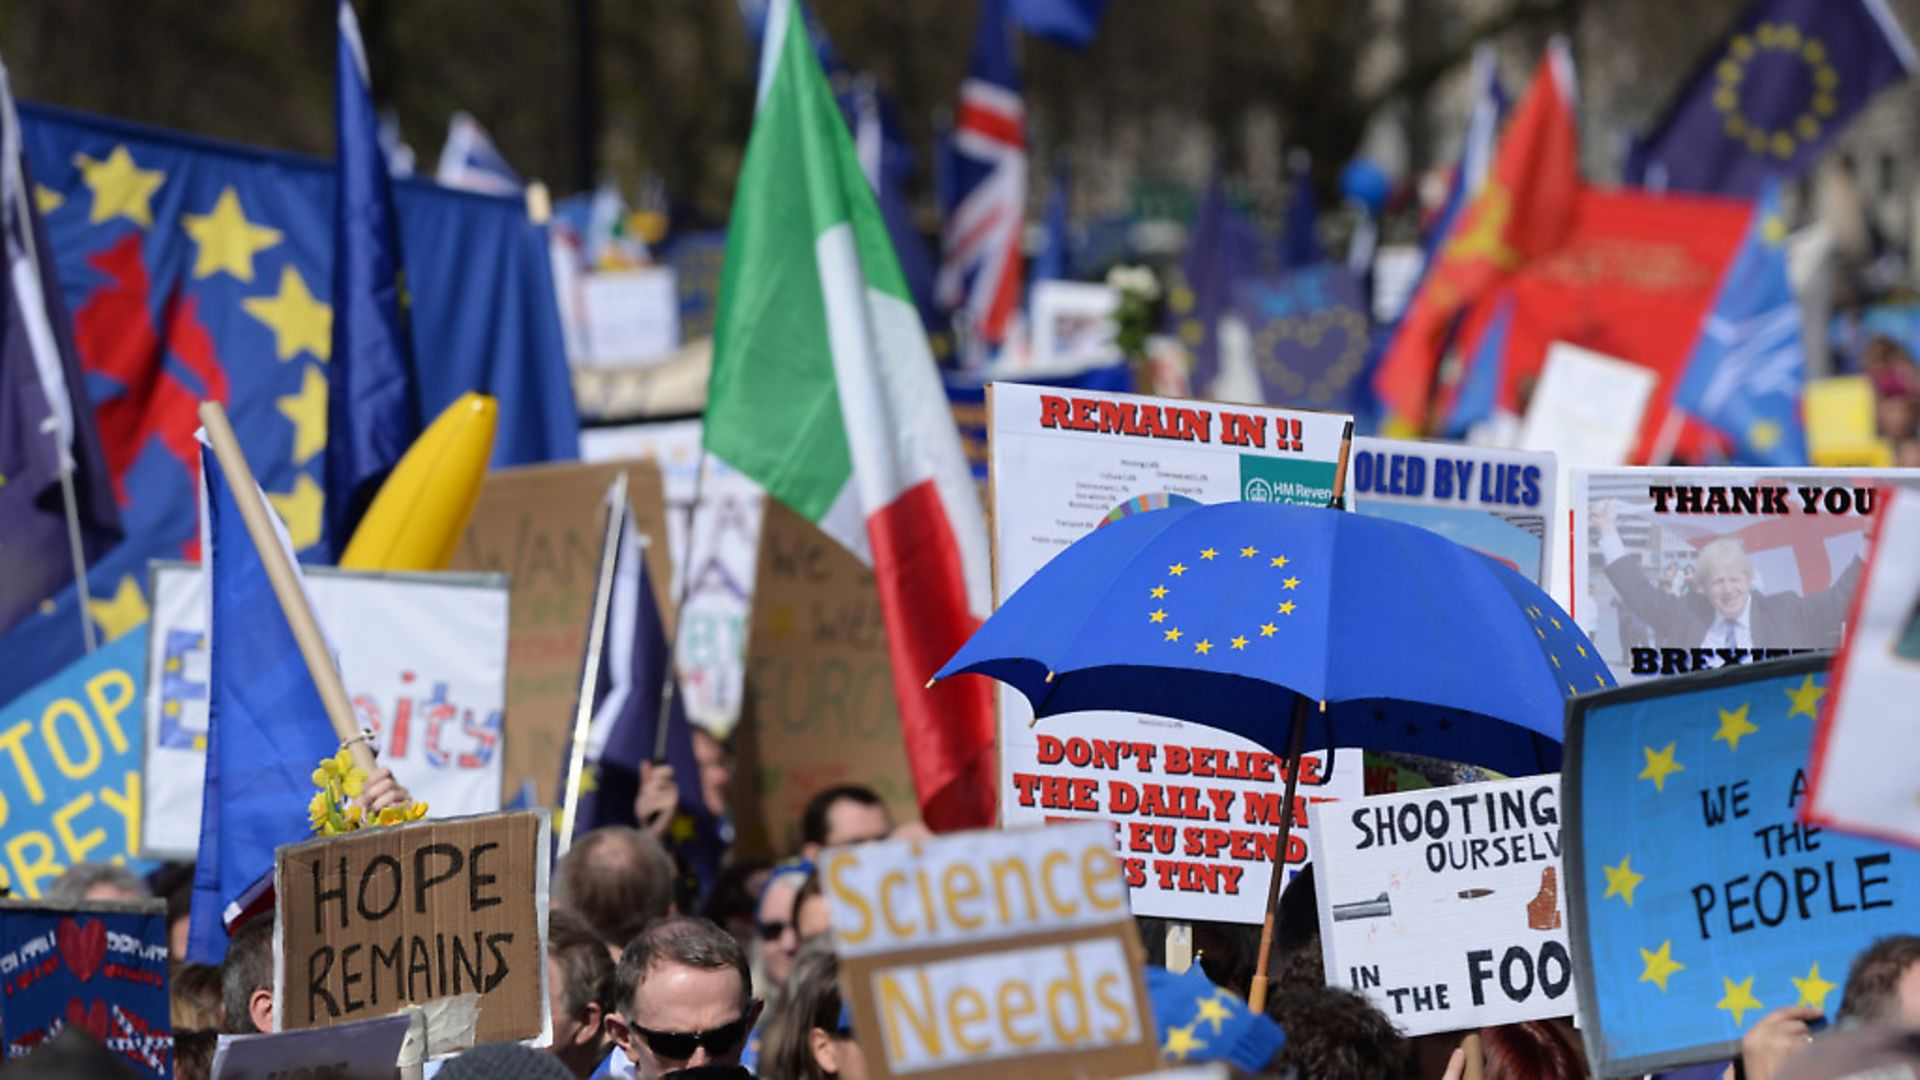 Placards and flags are held by pro-EU protesters taking part in a March for Europe rally against Brexit in central London. - Credit: PA Wire/PA Images